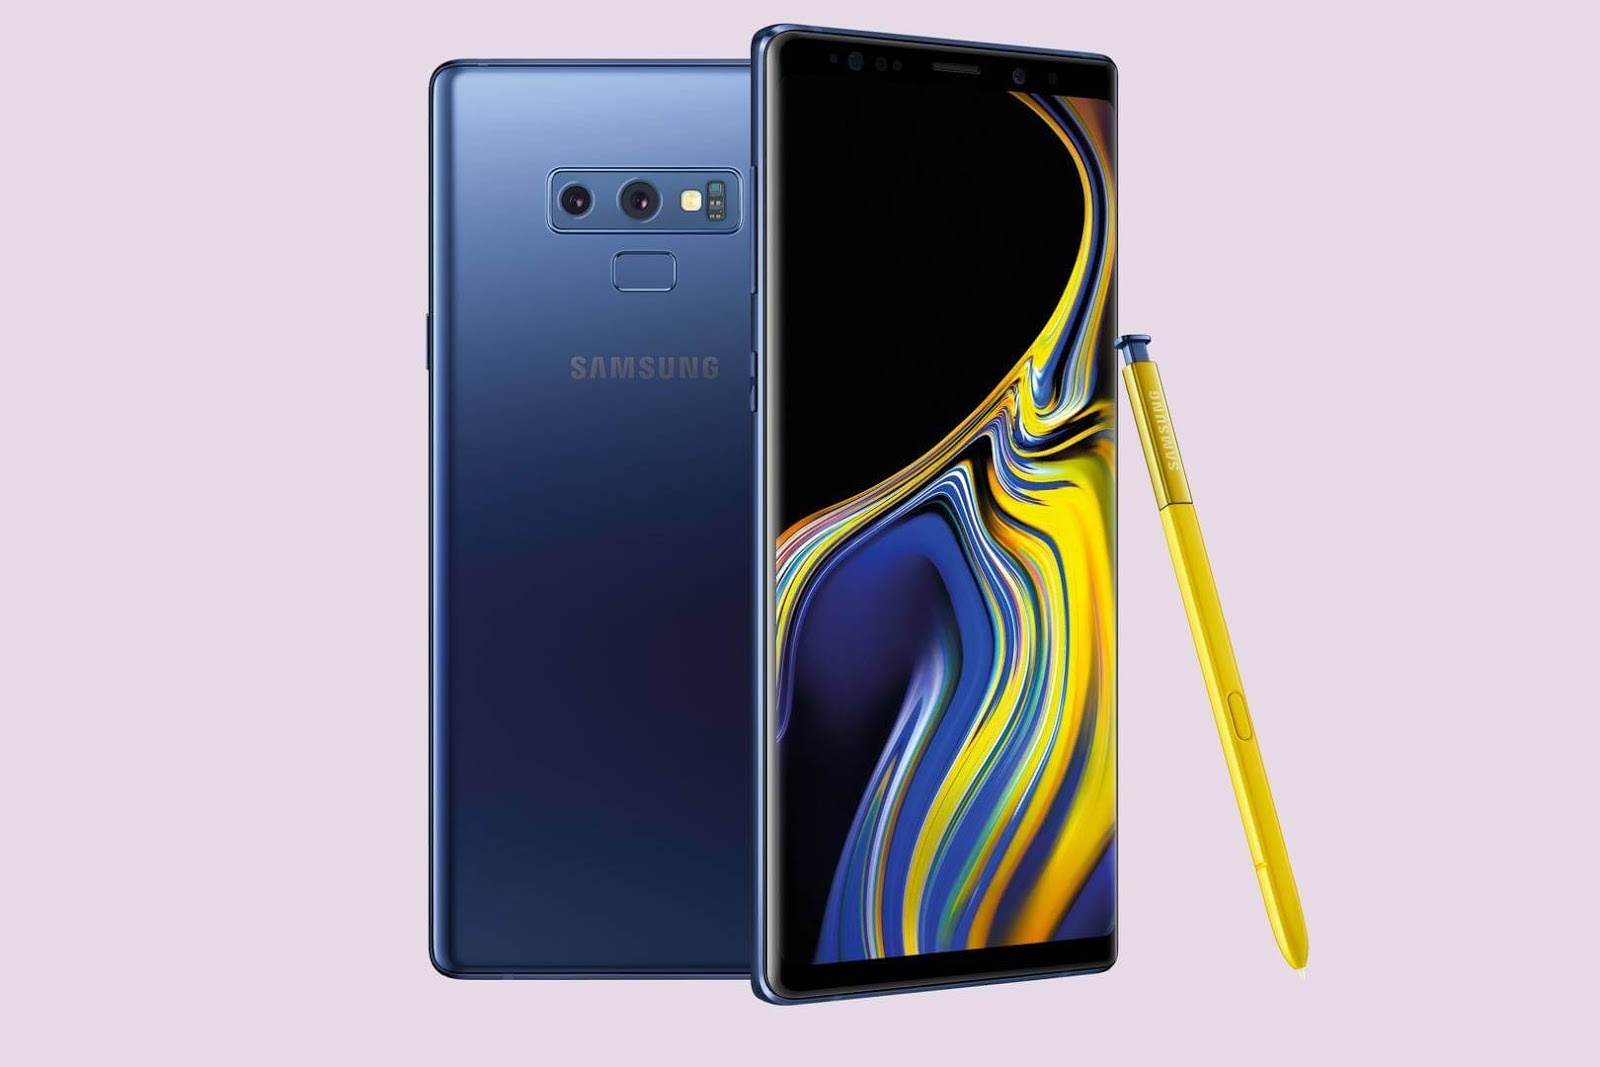 Samsung's Galaxy Note 9